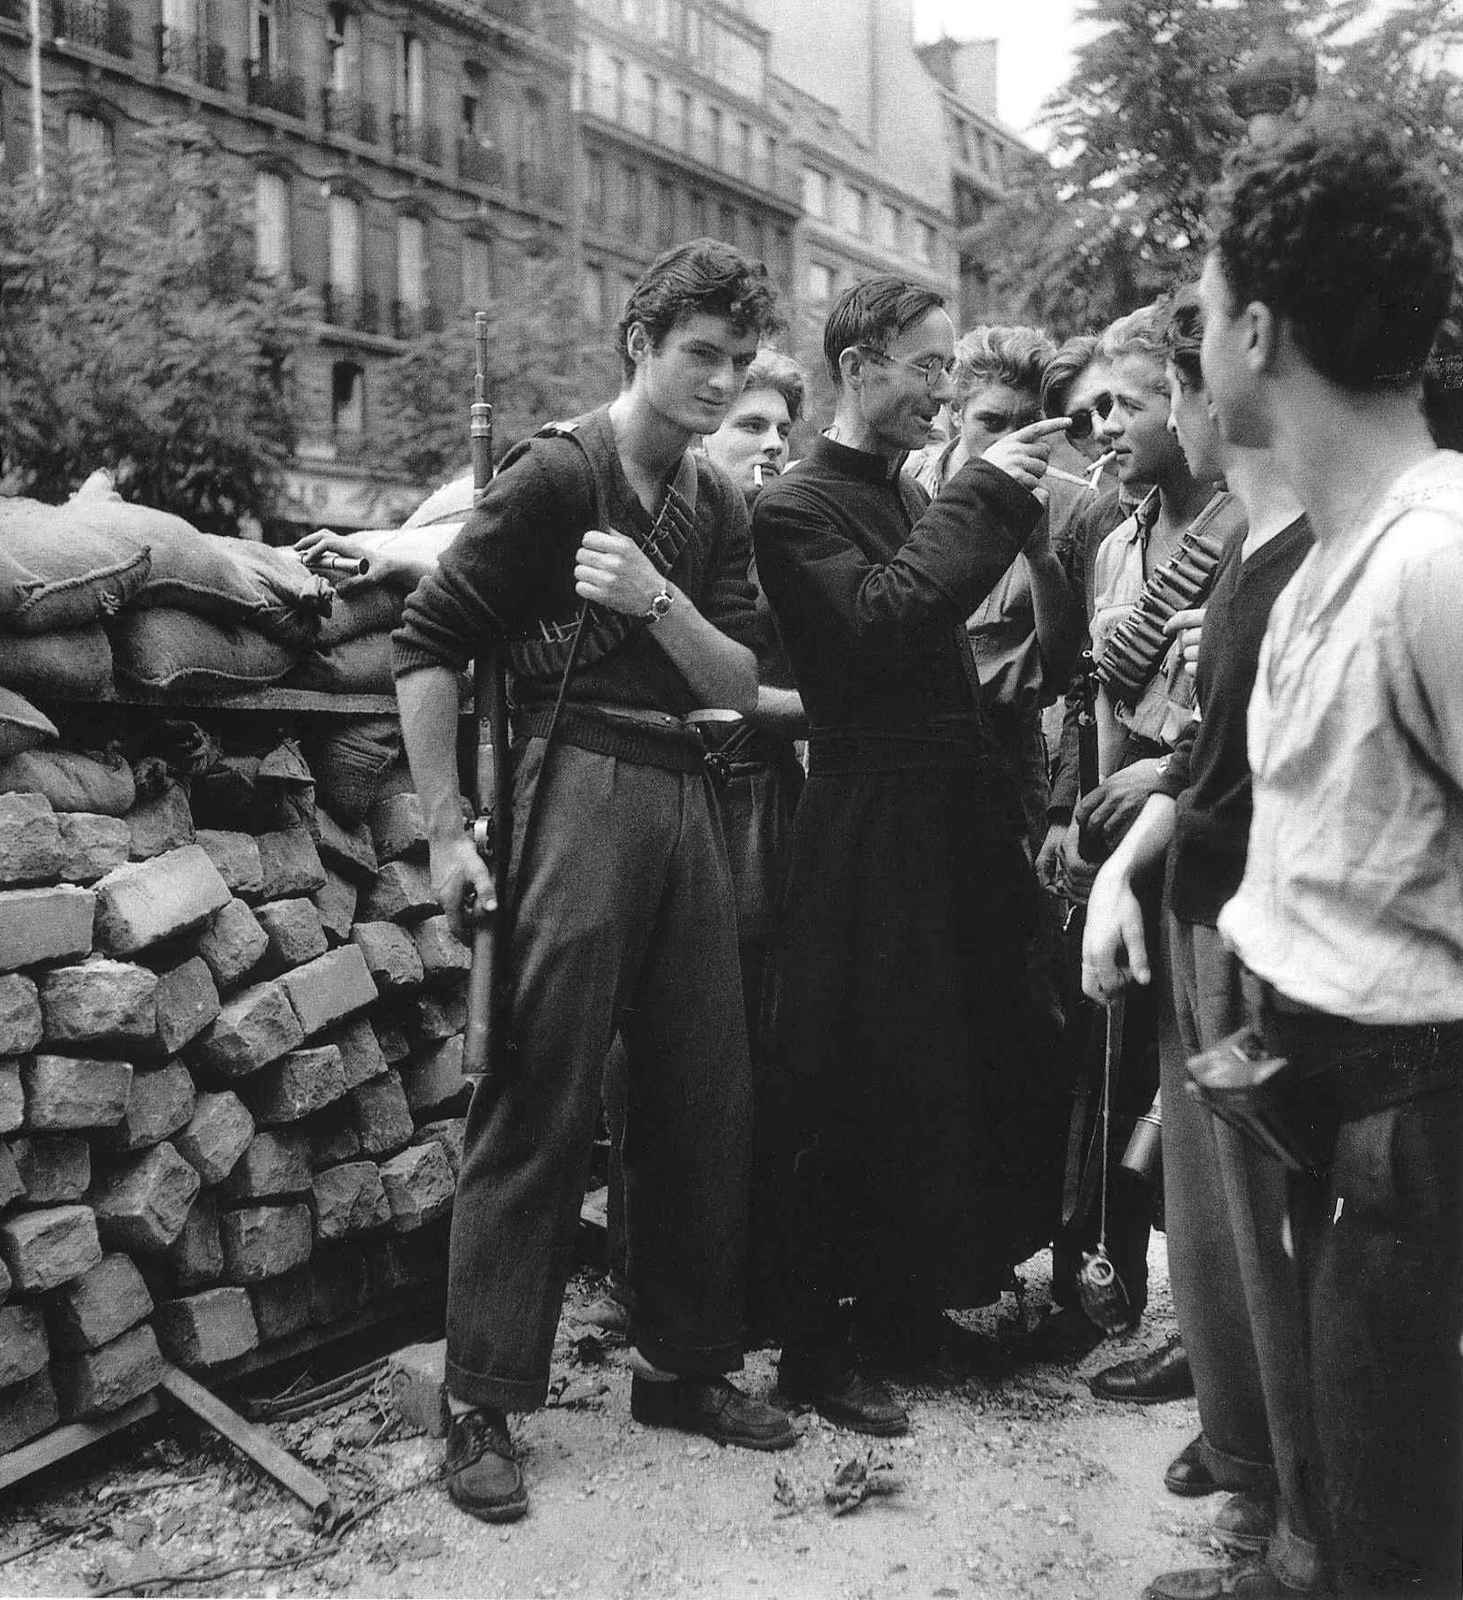 french resistance The french resistance fighters changed the fate of world war two despite a very high risk to themselves resistance fighter were able to subvert and considerably slow and sabotage enemy advances.